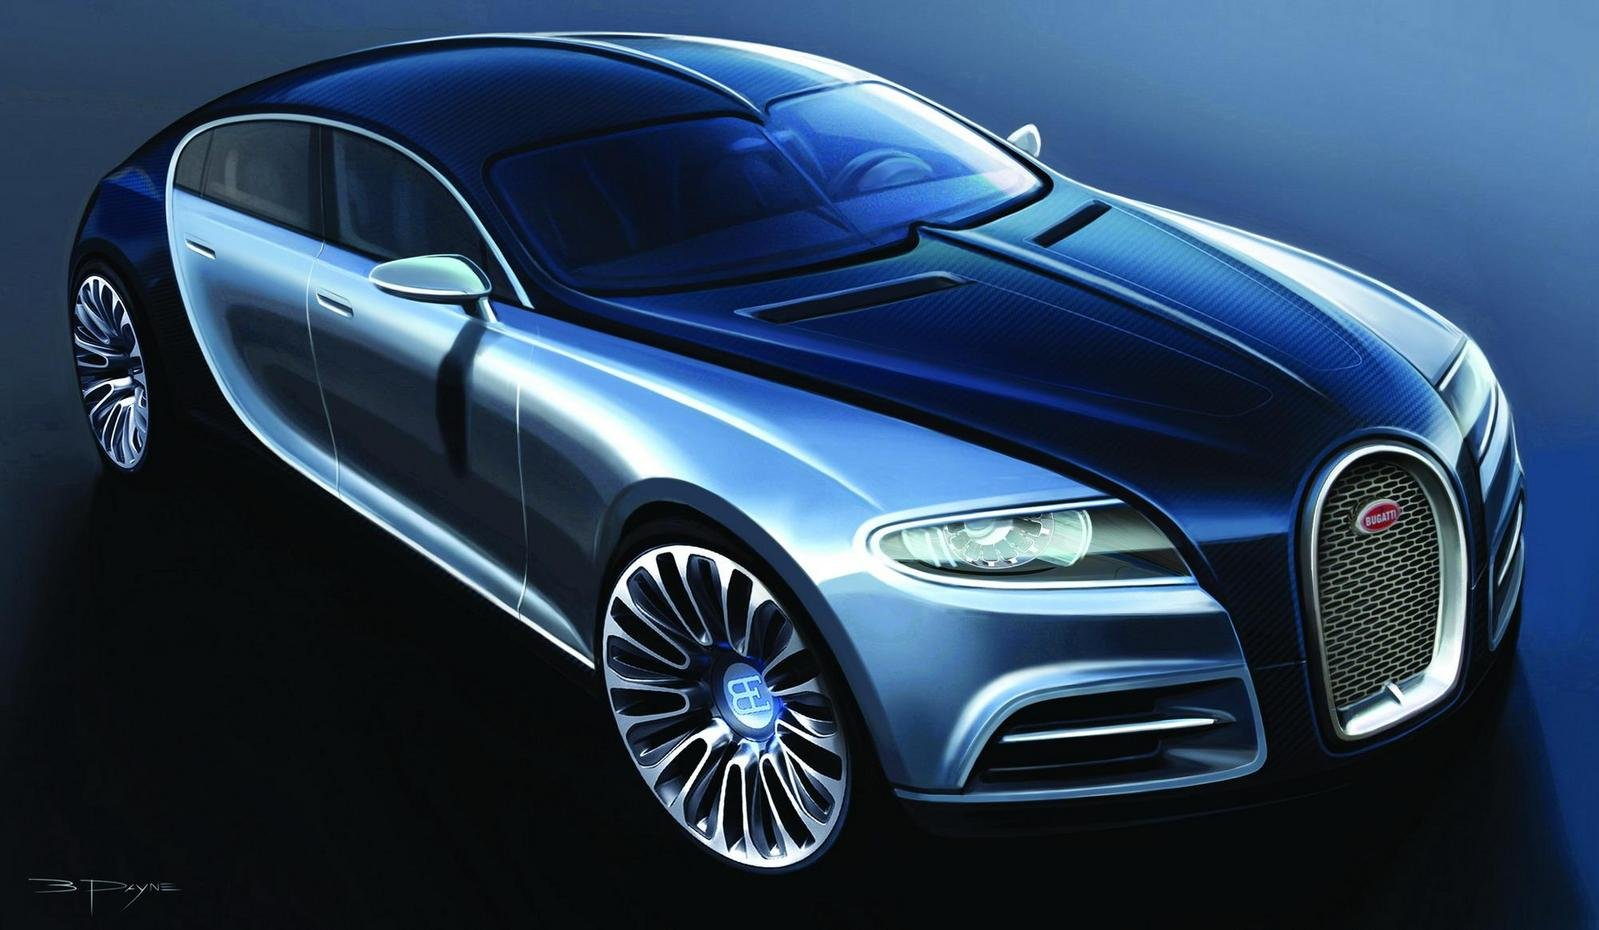 7 New Luxury Cars Coming Out For 2016: 2020 Bugatti Galibier Price * Release Date * Specs * Design